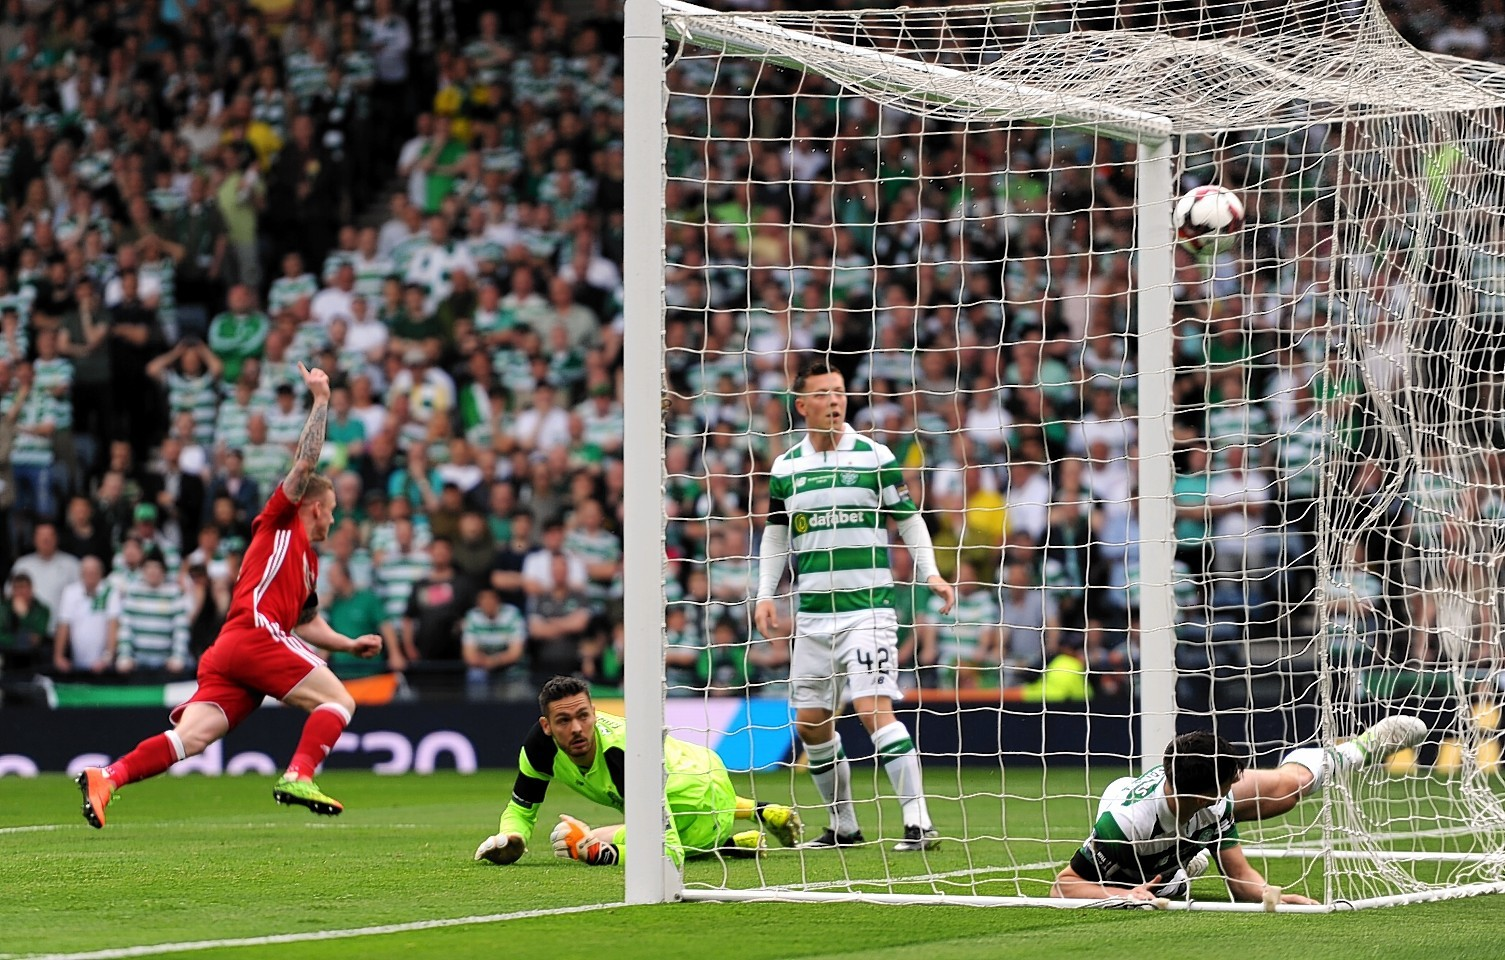 Hayes netting in the Scottish Cup final in 2017.